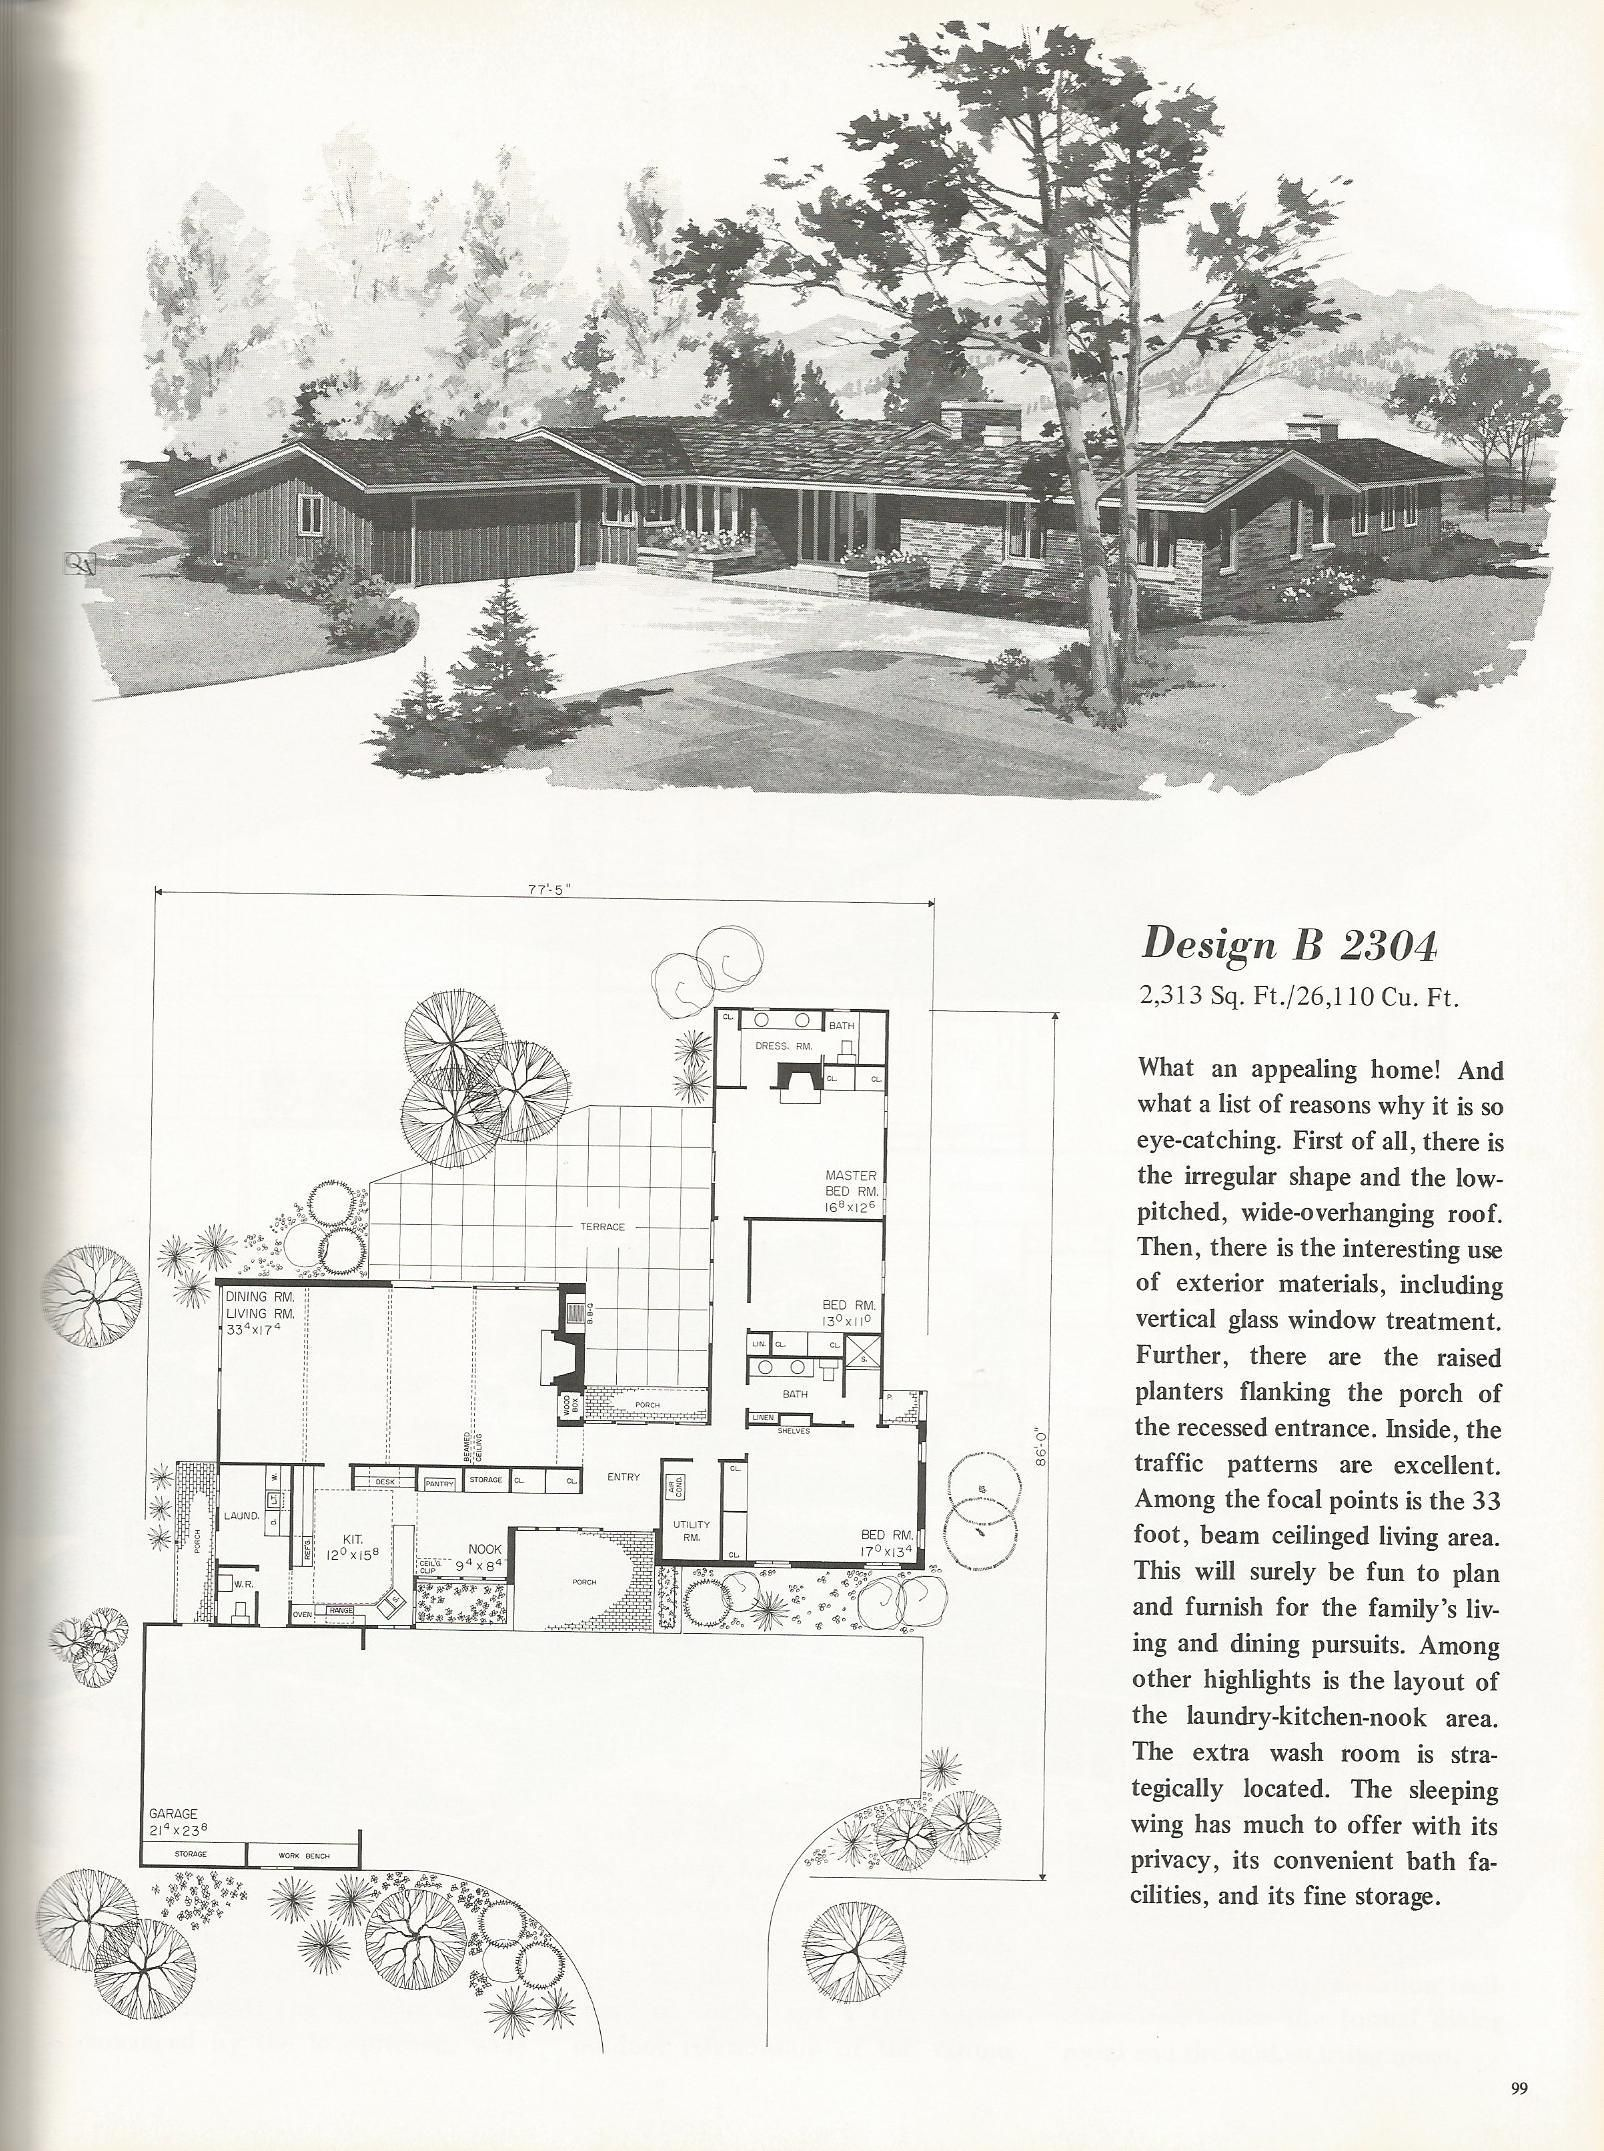 Vintage House Plans: Luxurious One Story Homes | Vintage ...